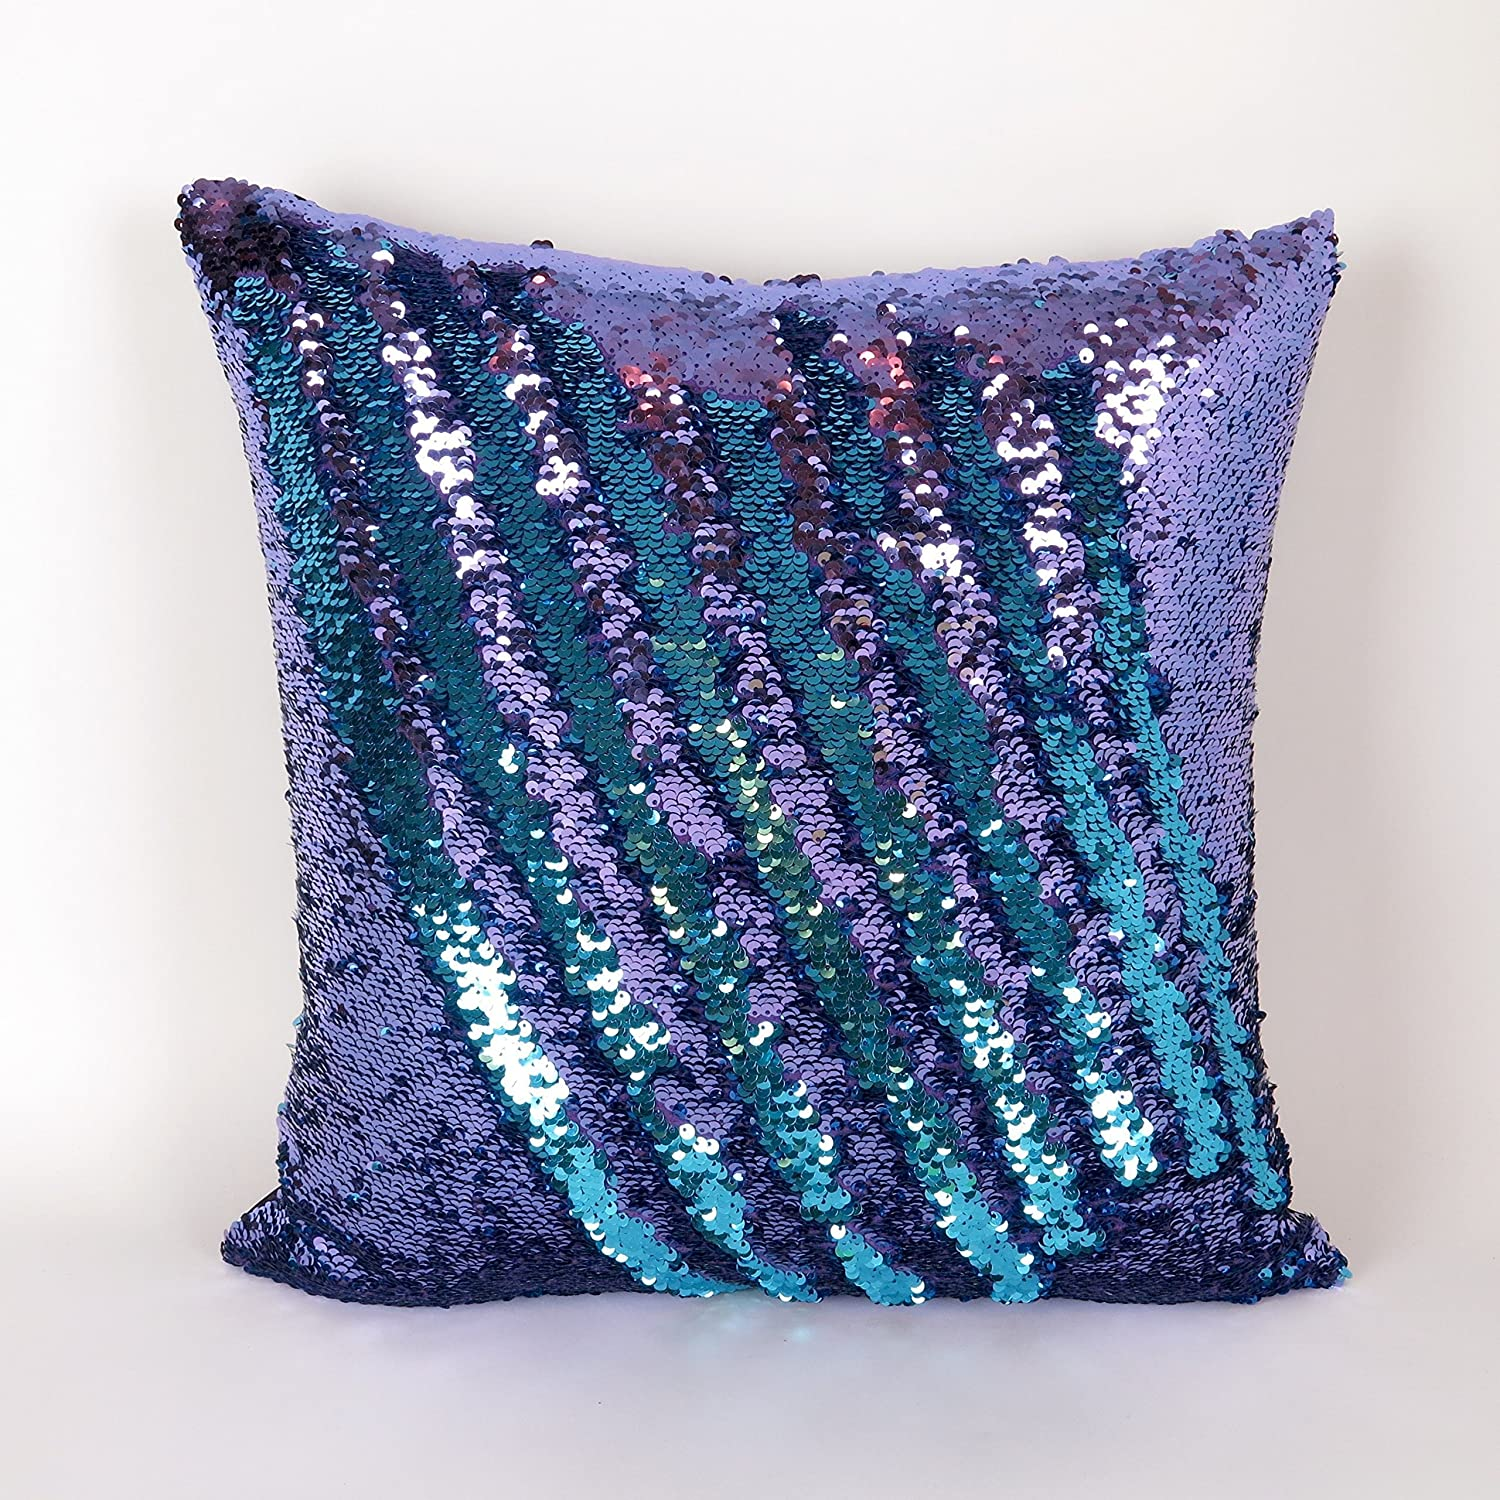 amazoncom mermaid pillow cover  purple and turquoise reversible  - amazoncom mermaid pillow cover  purple and turquoise reversible sequindecorative throw pillow cover for a (x x x